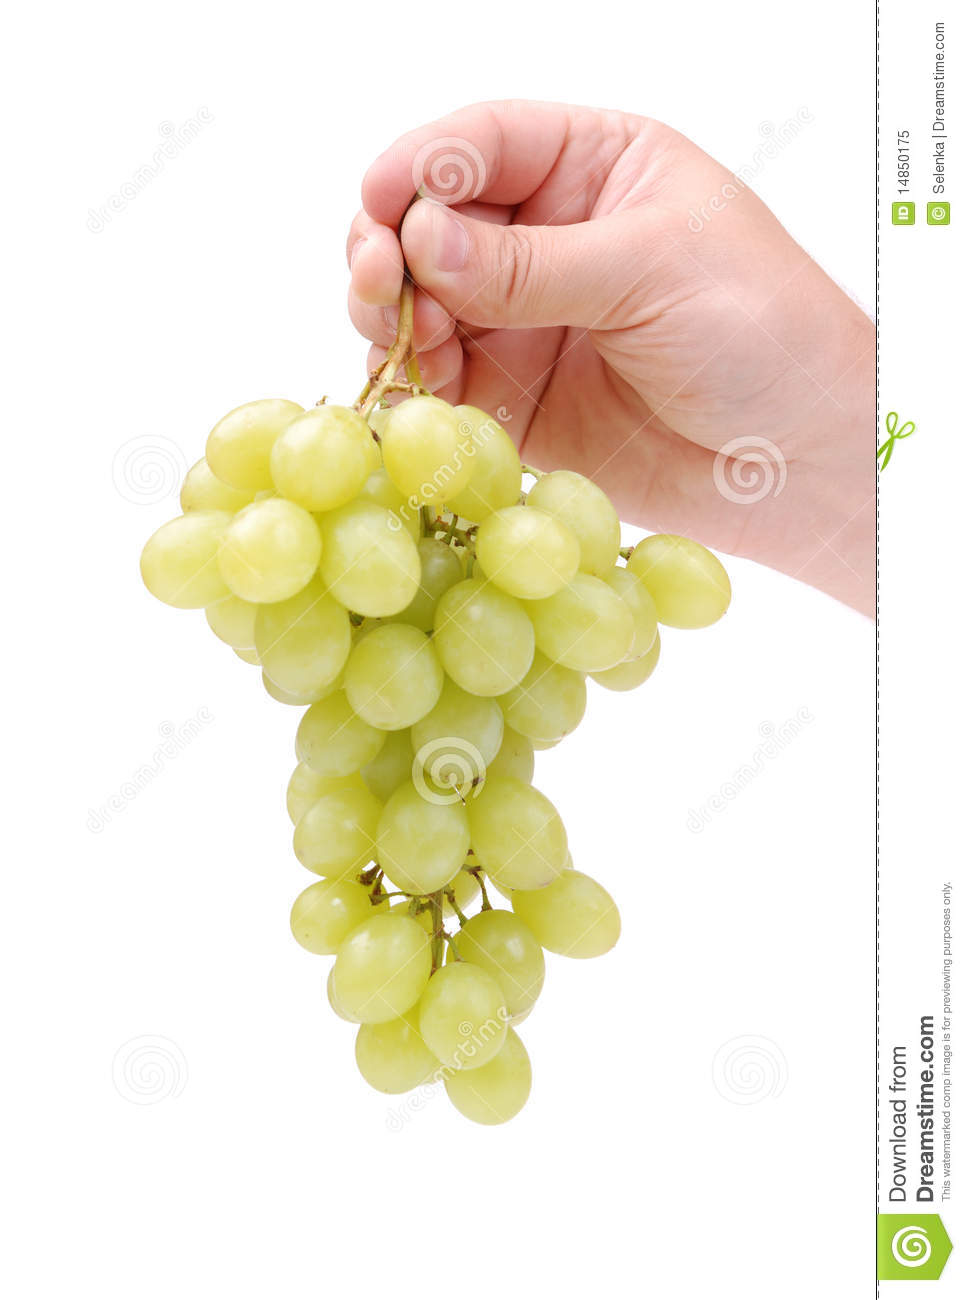 Bunch of a green grapes in hand